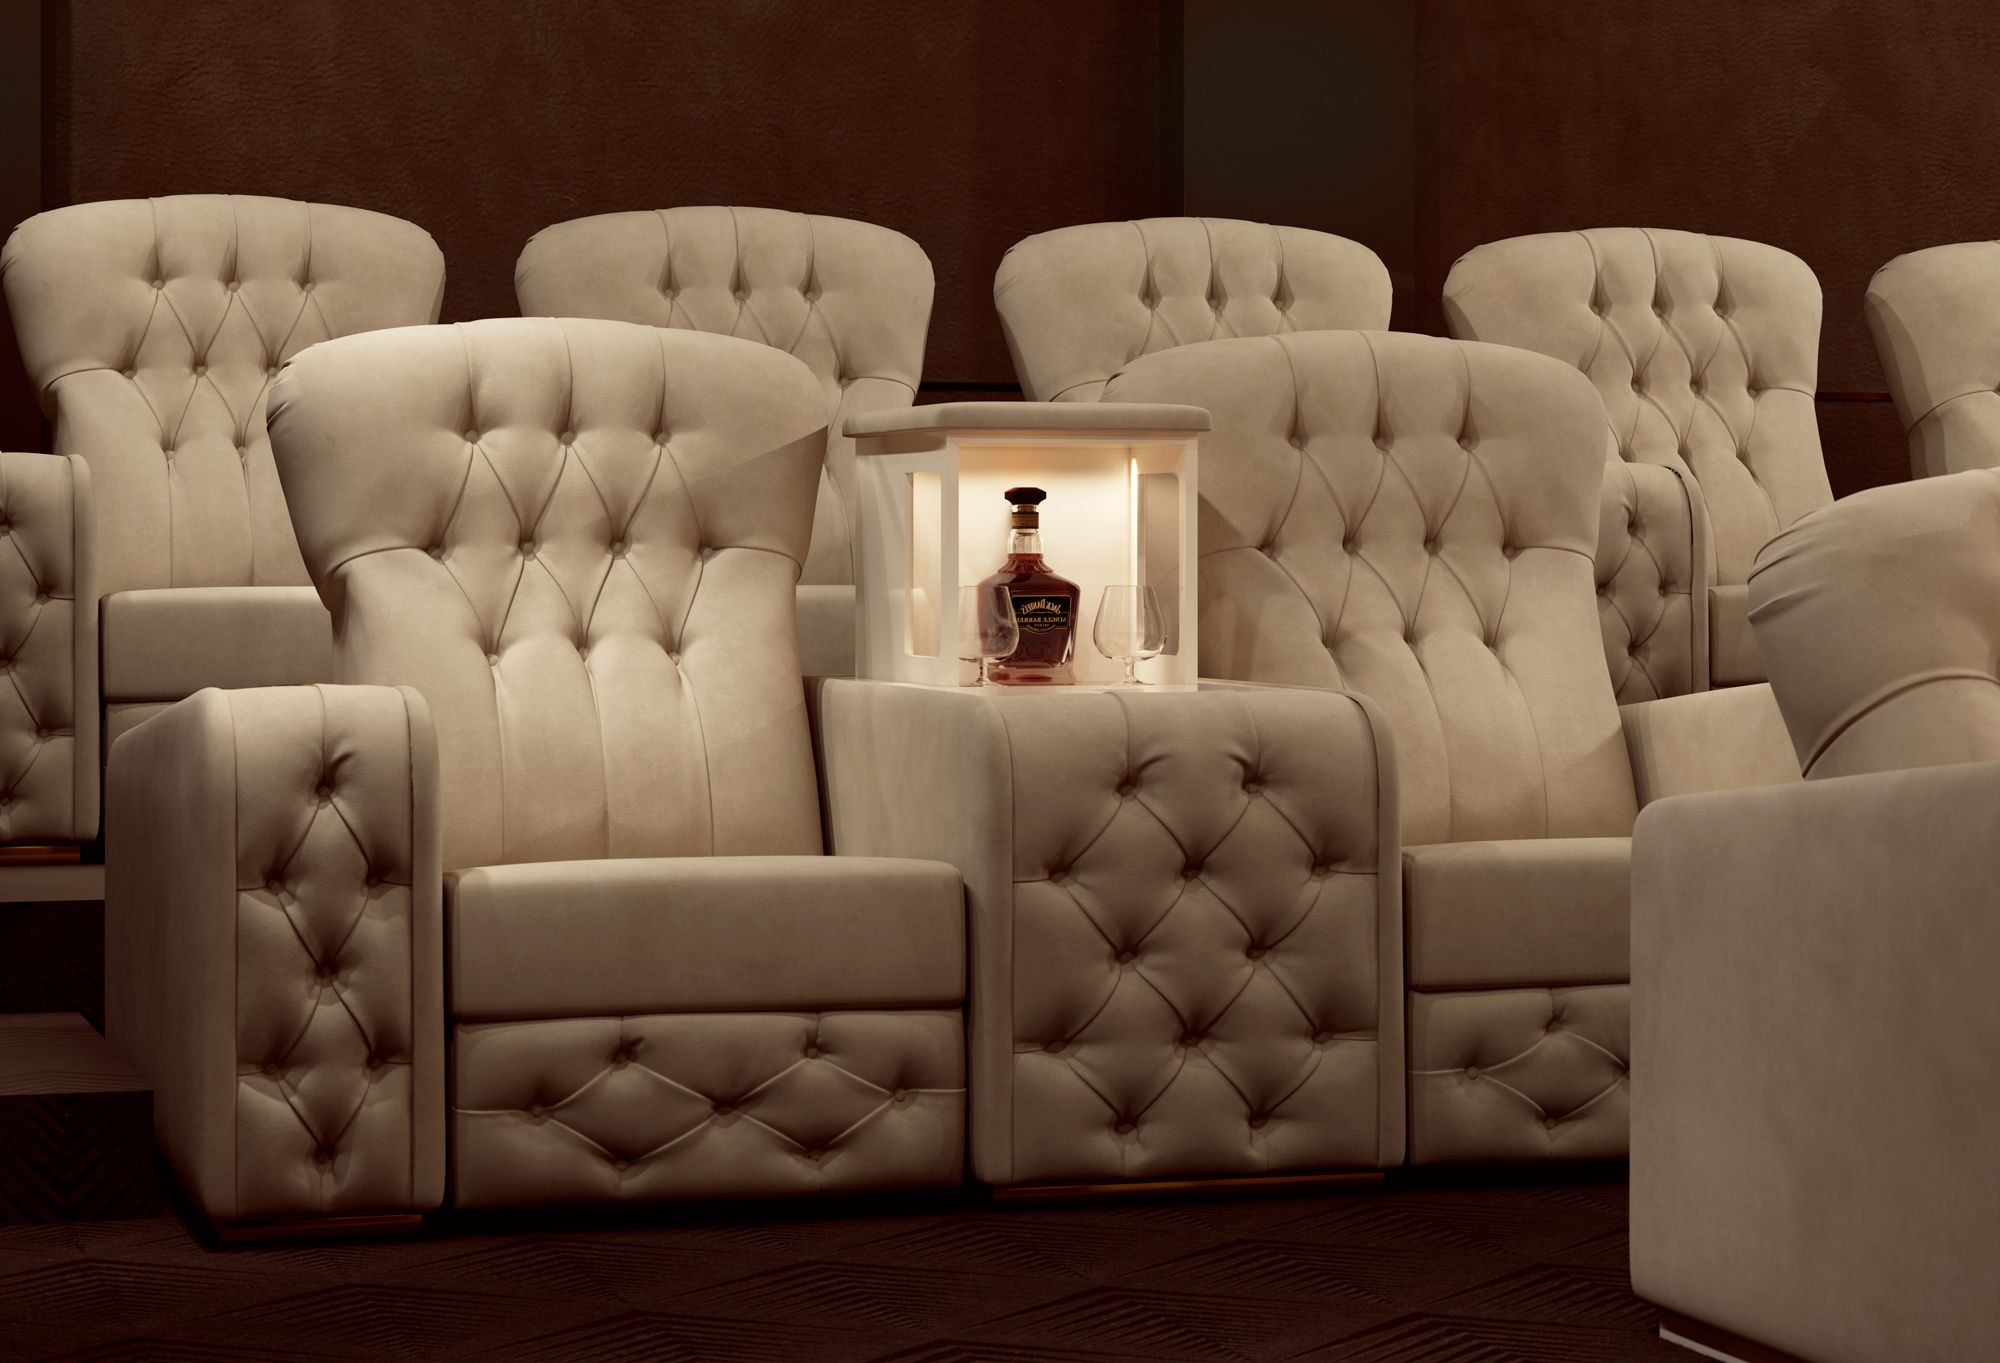 Dramaticatmosphere for a Home Theatre Room fully furnished Vismara ...